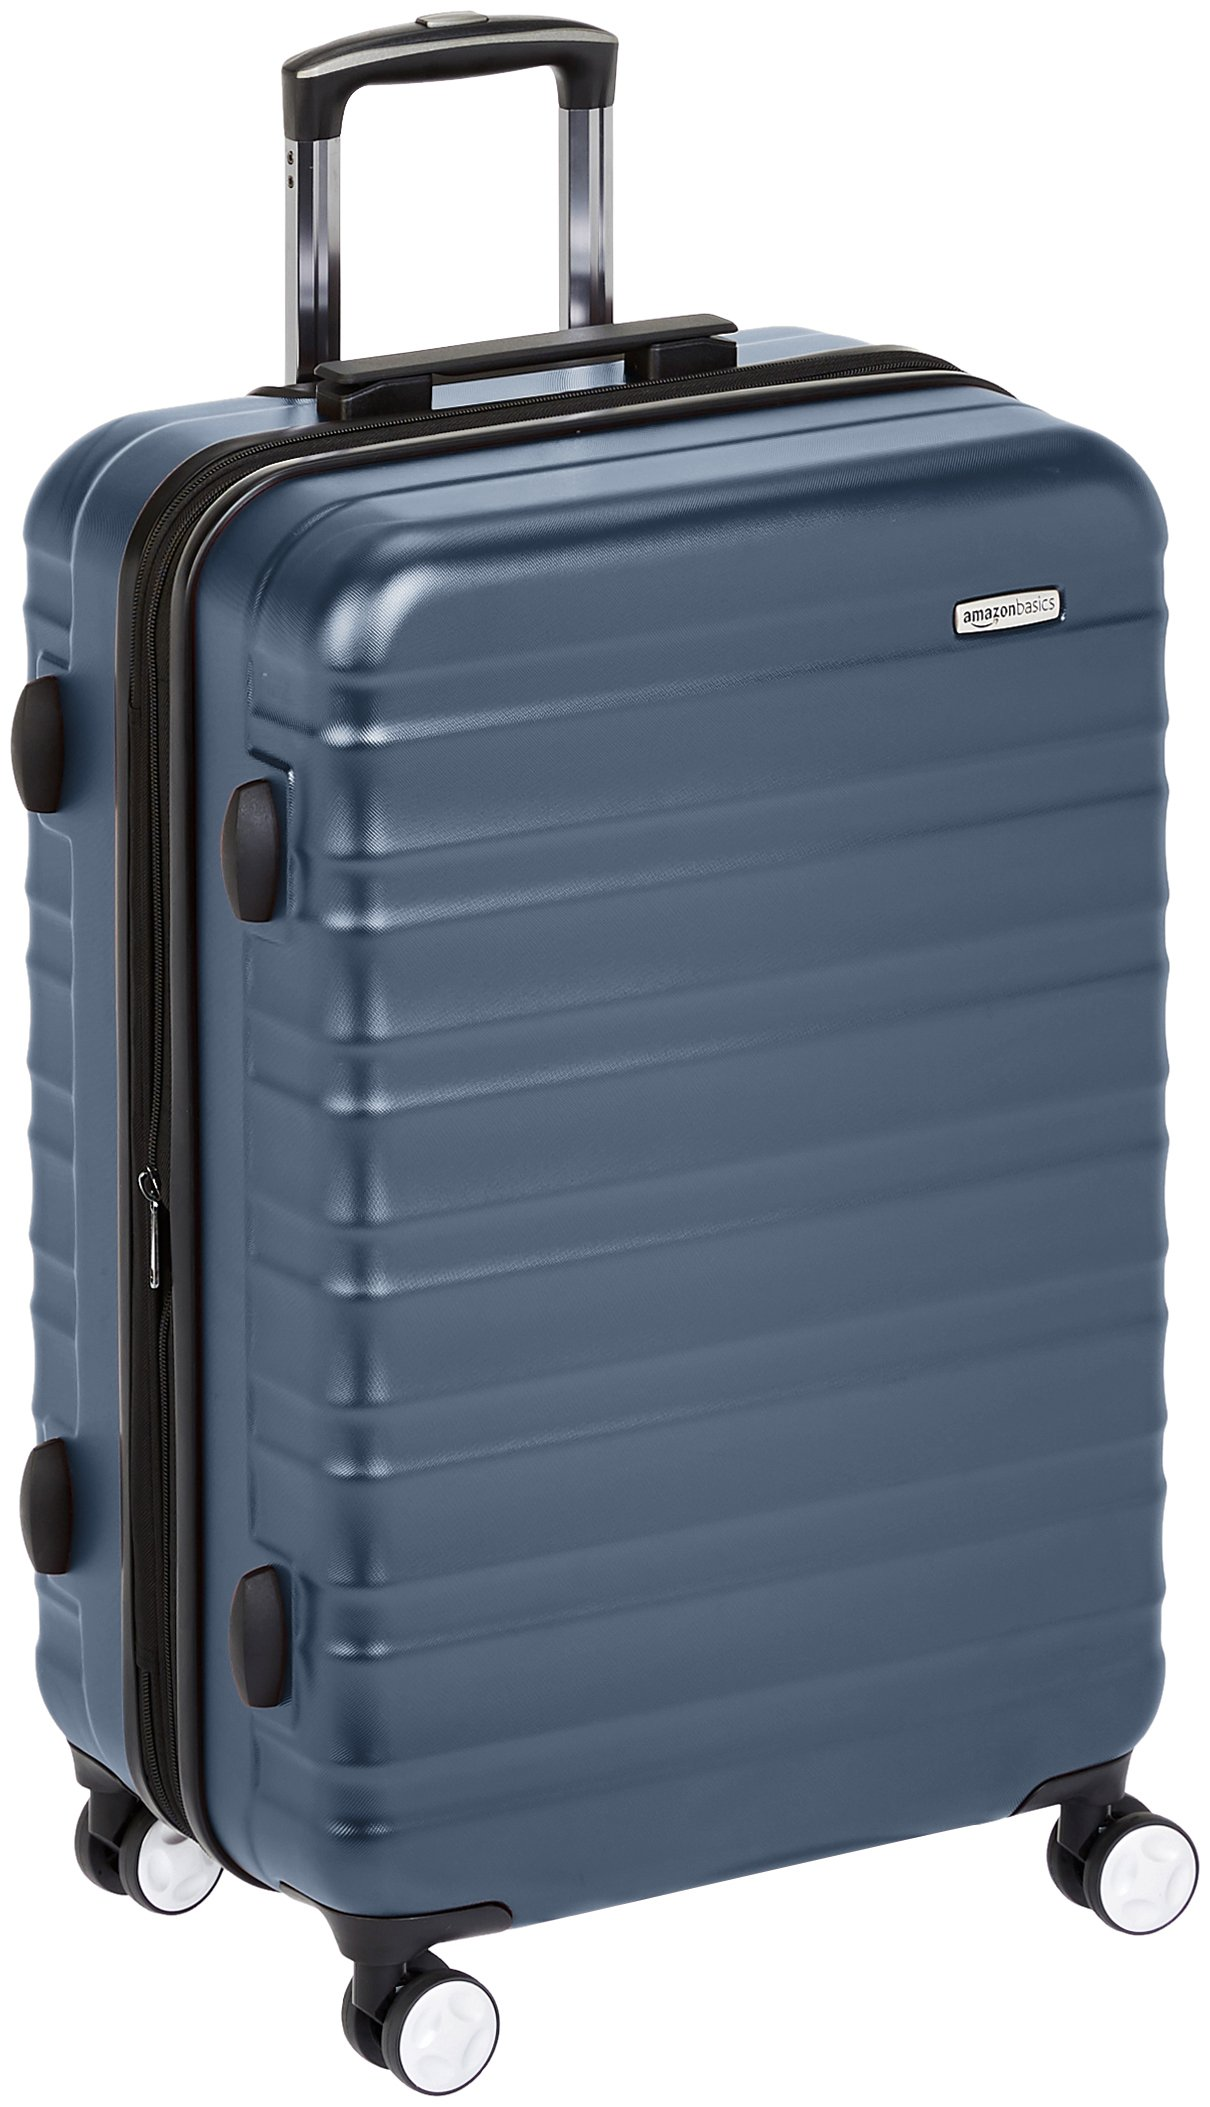 AmazonBasics Premium Hardside Spinner Luggage with Built-In TSA Lock - 28-Inch, Navy Blue